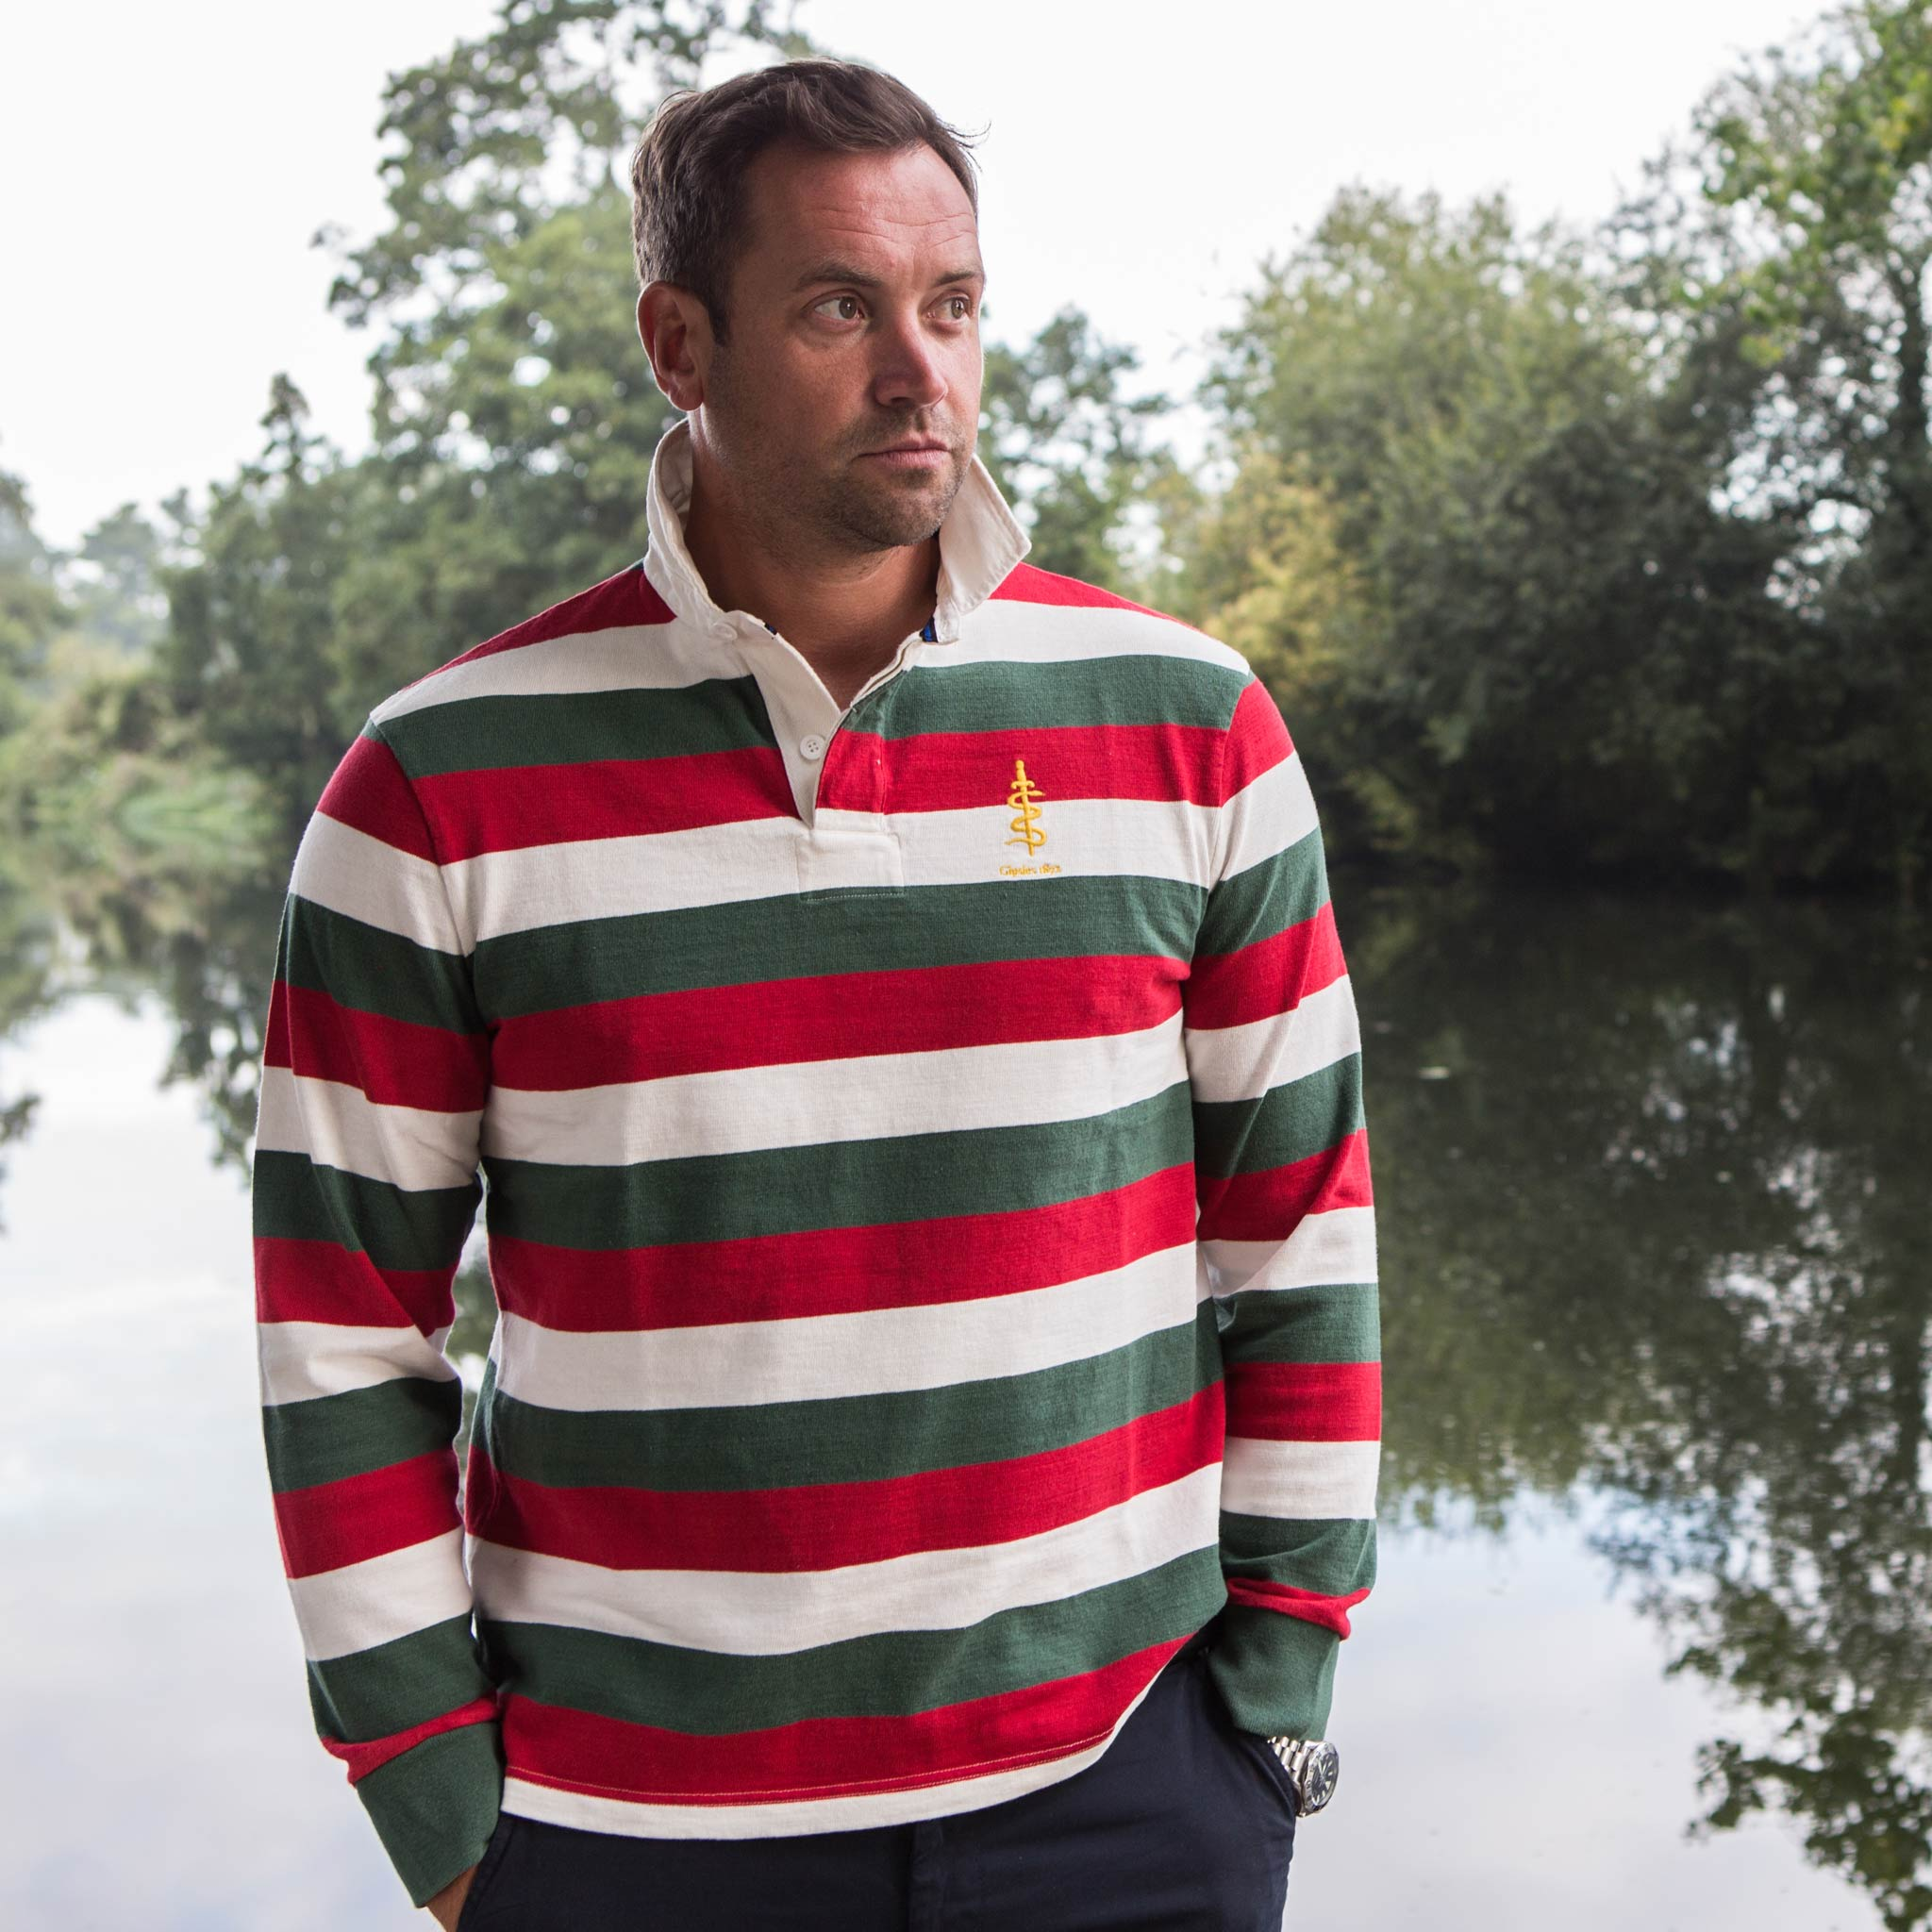 Gipsies 1871 Rugby Shirt - model